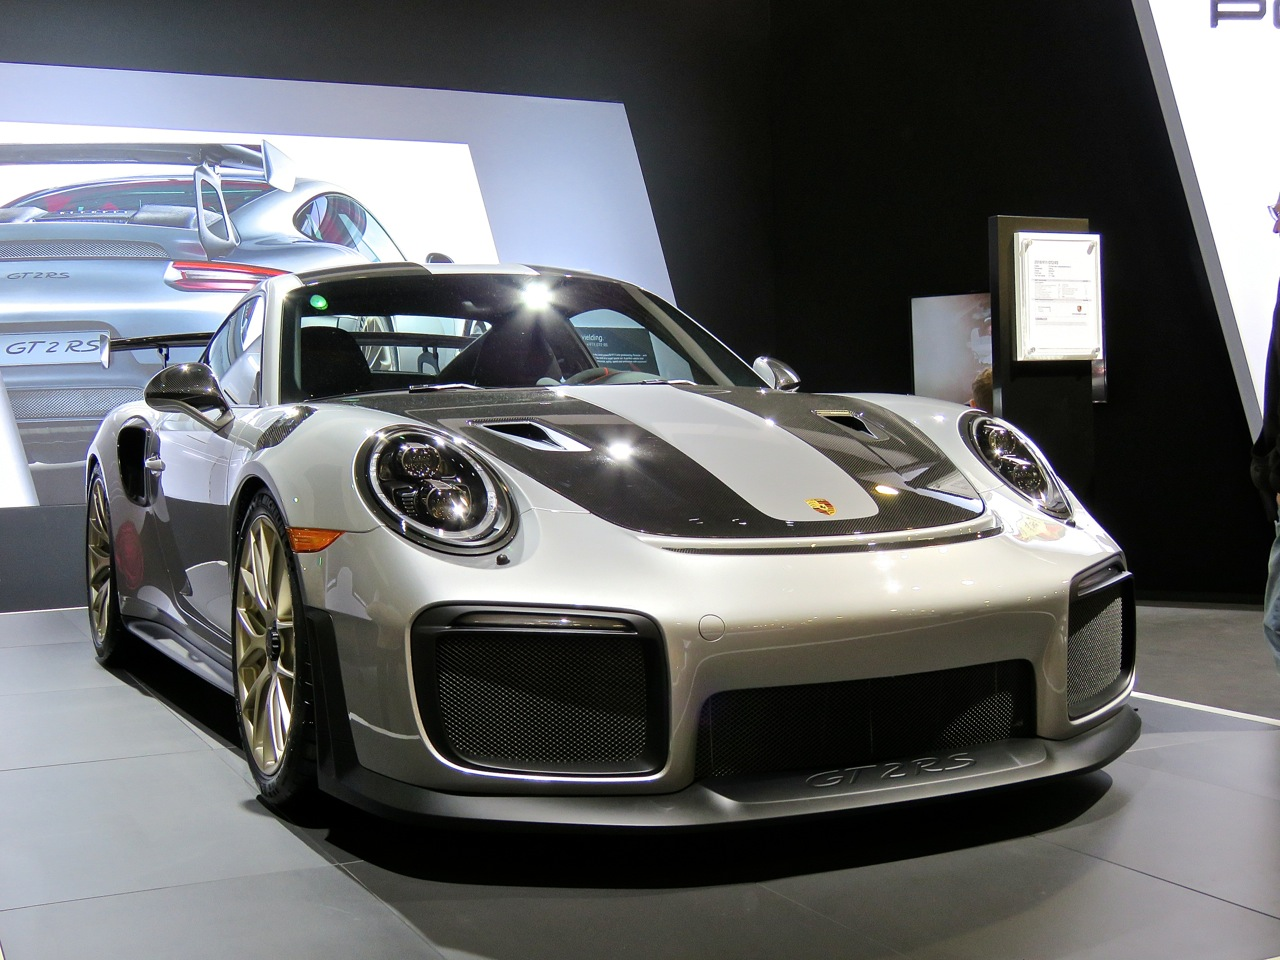 Porsche 991.2 GT2 RS Philly 3